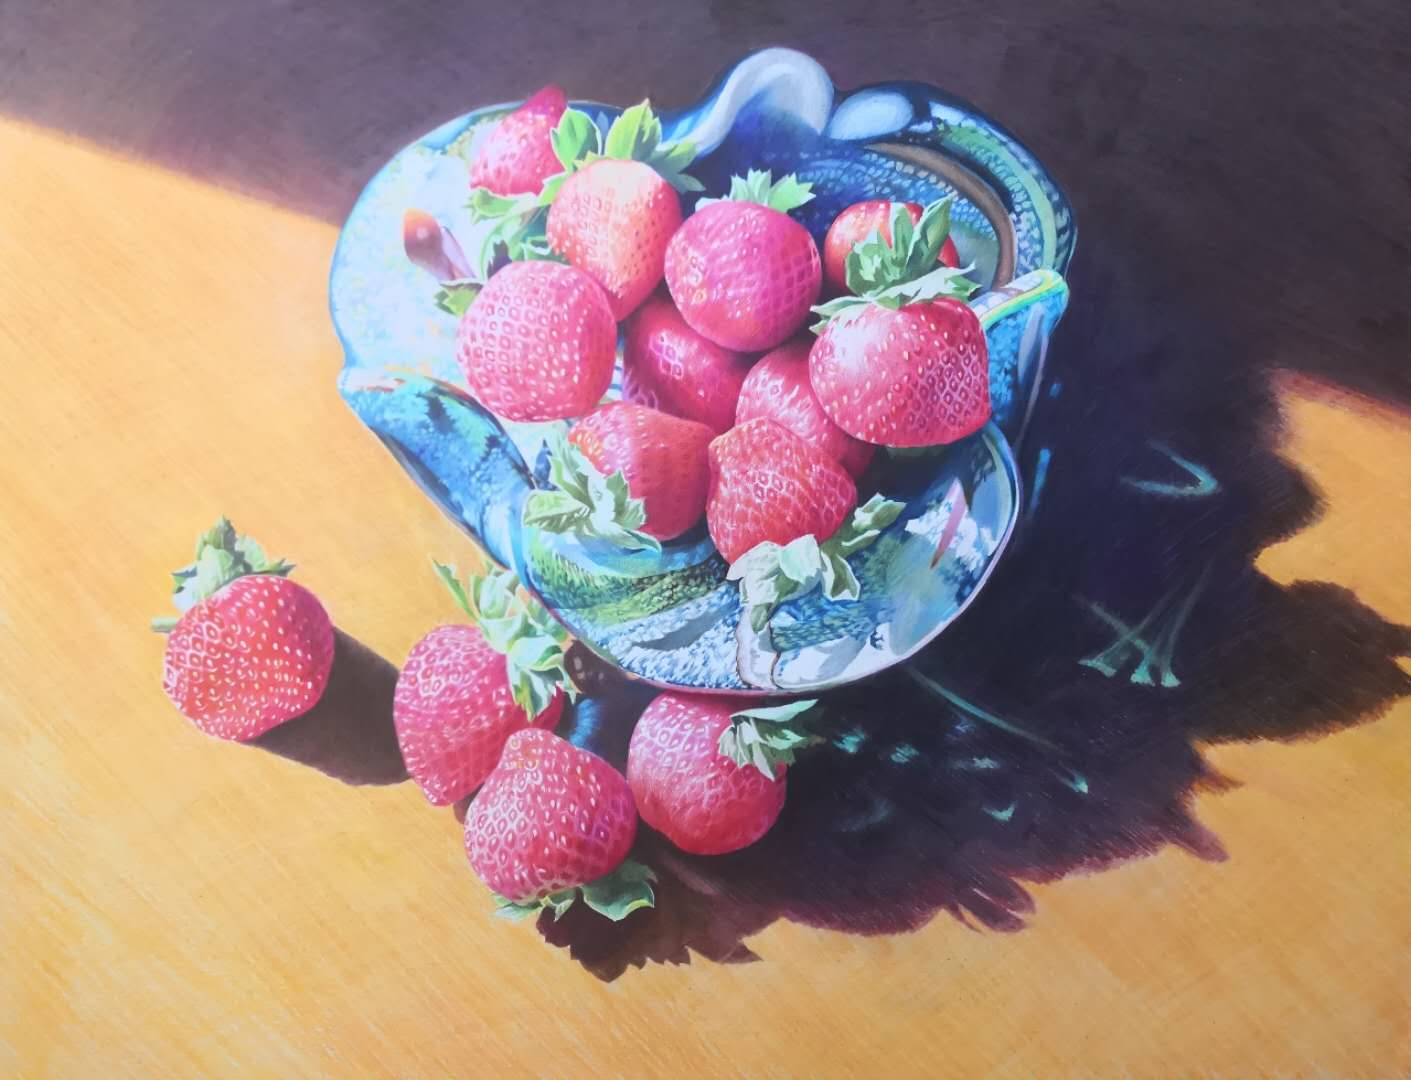 strawberries in a tray